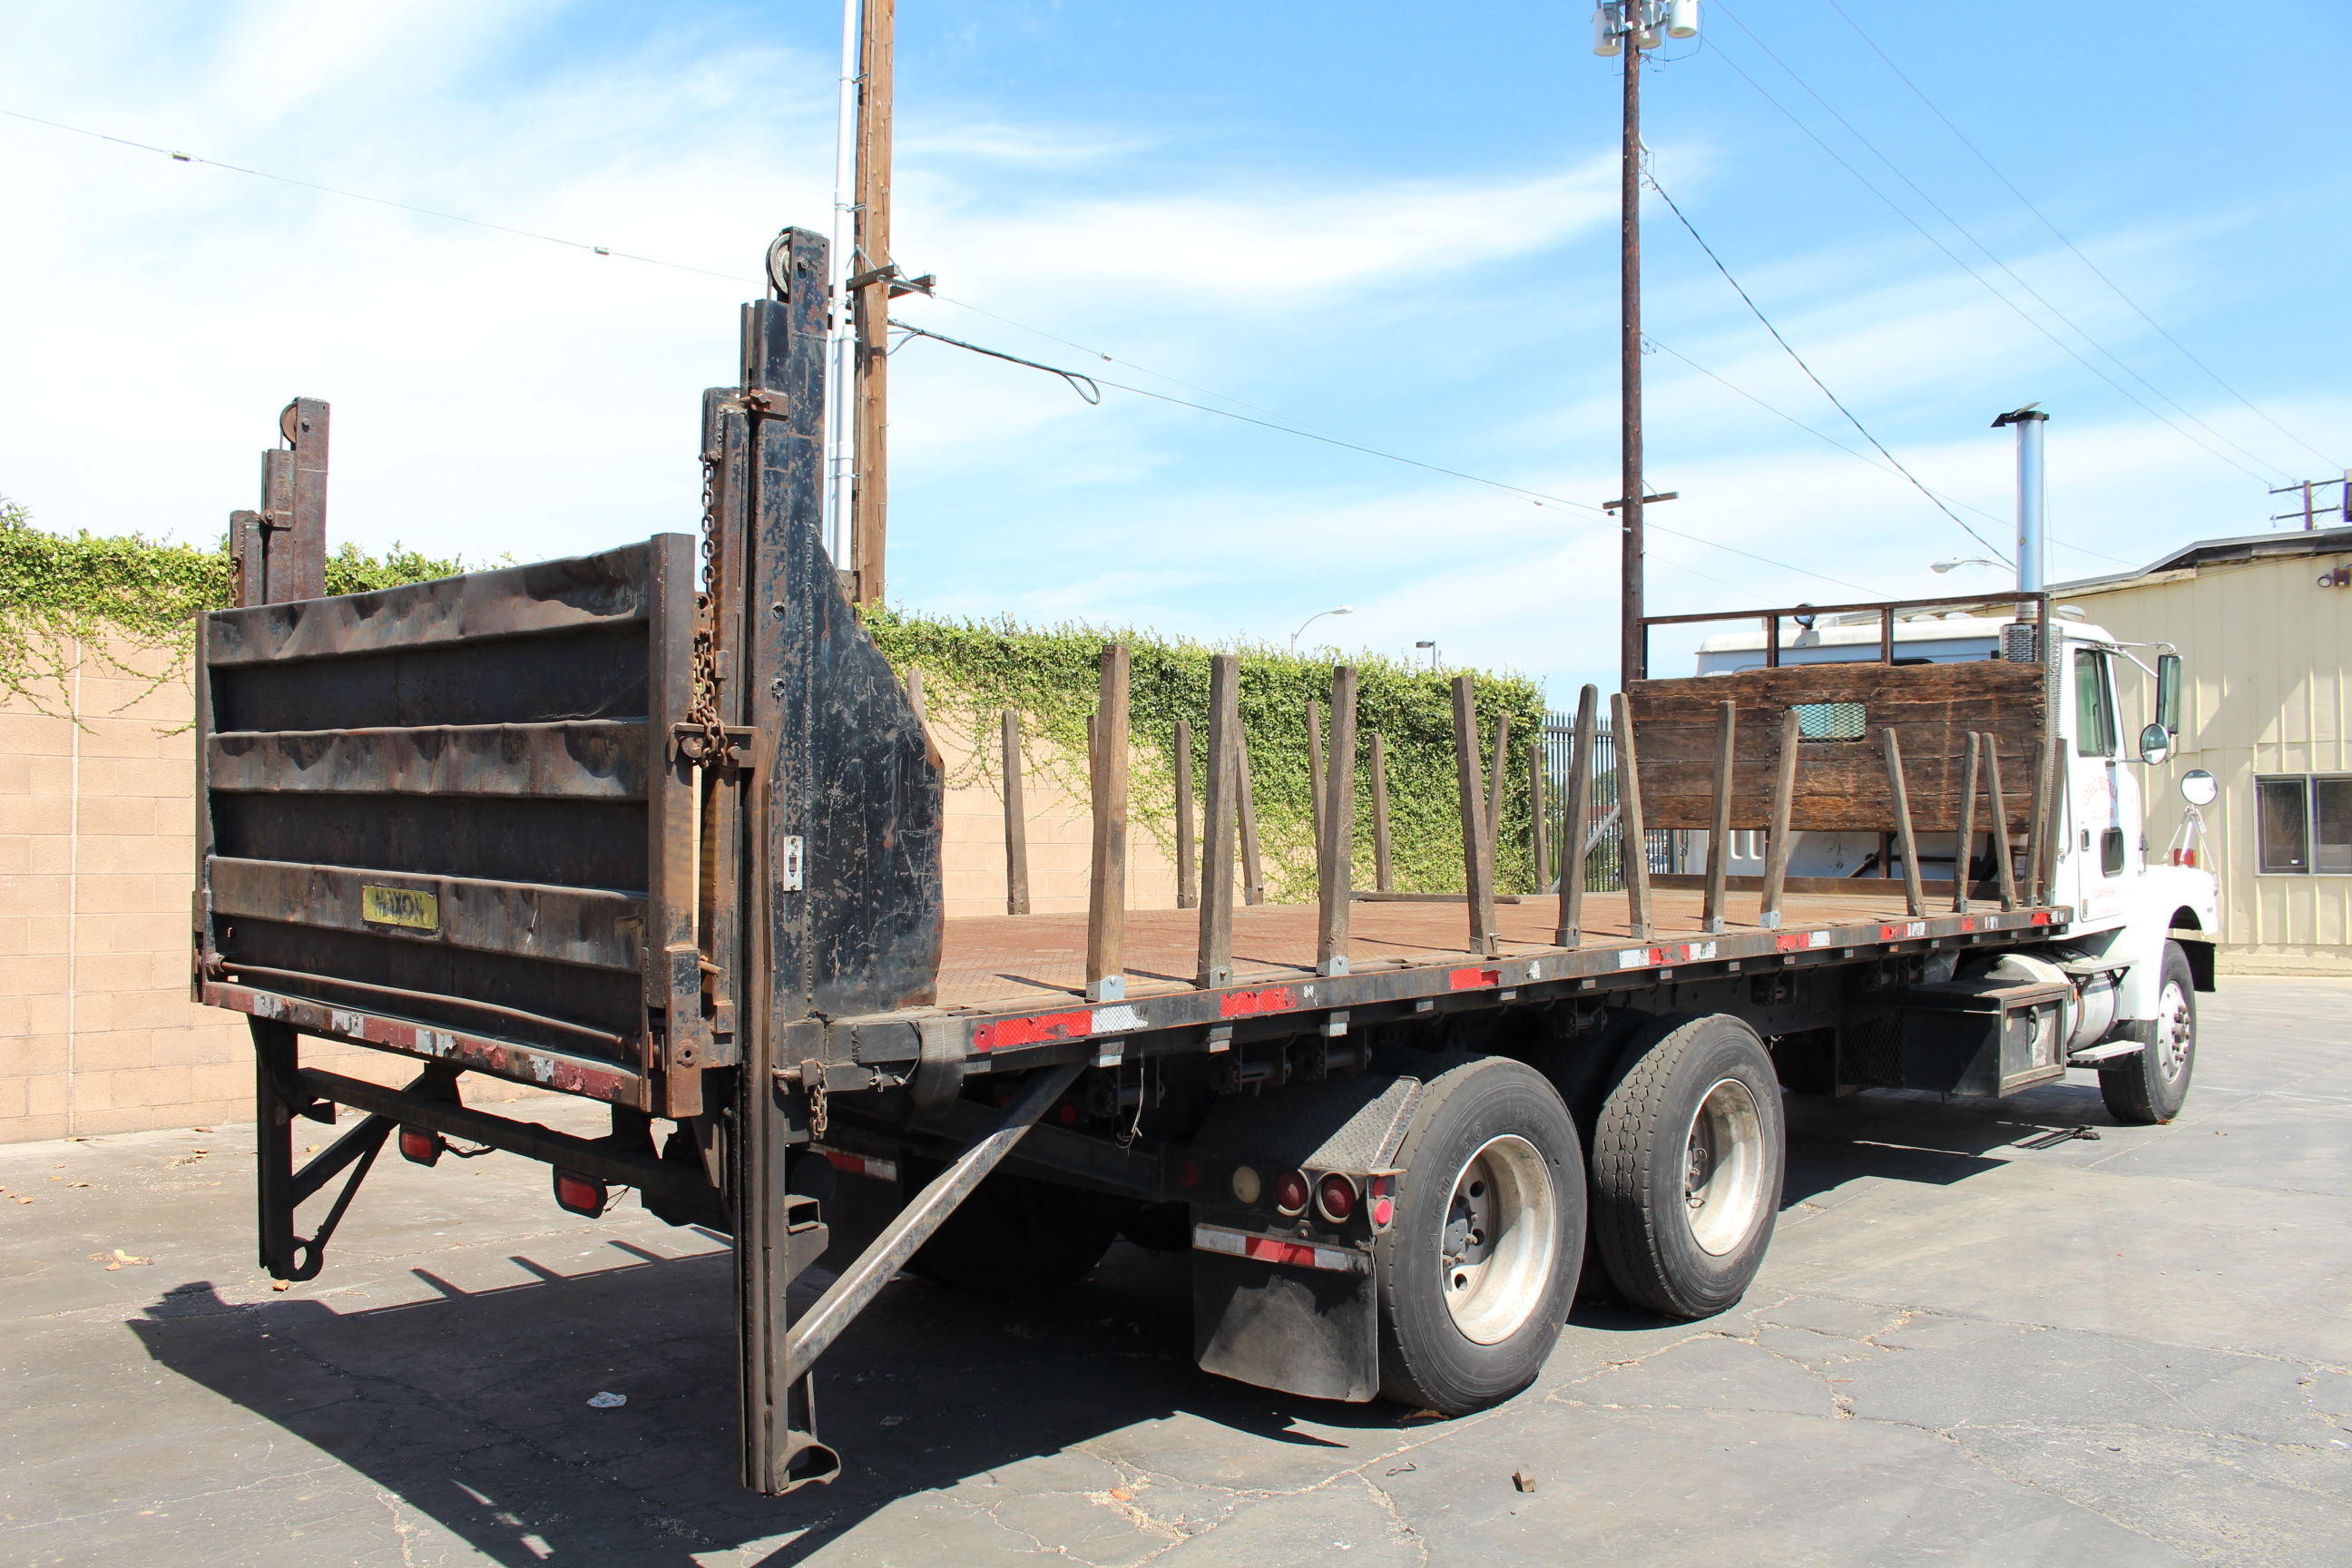 Lot 0A - 1996 VOLVO STAKE BED TRUCK, 24' BED, CUMMINGS 94 M11-330E DIESEL ENGINE, ONLY 128,612 MILES